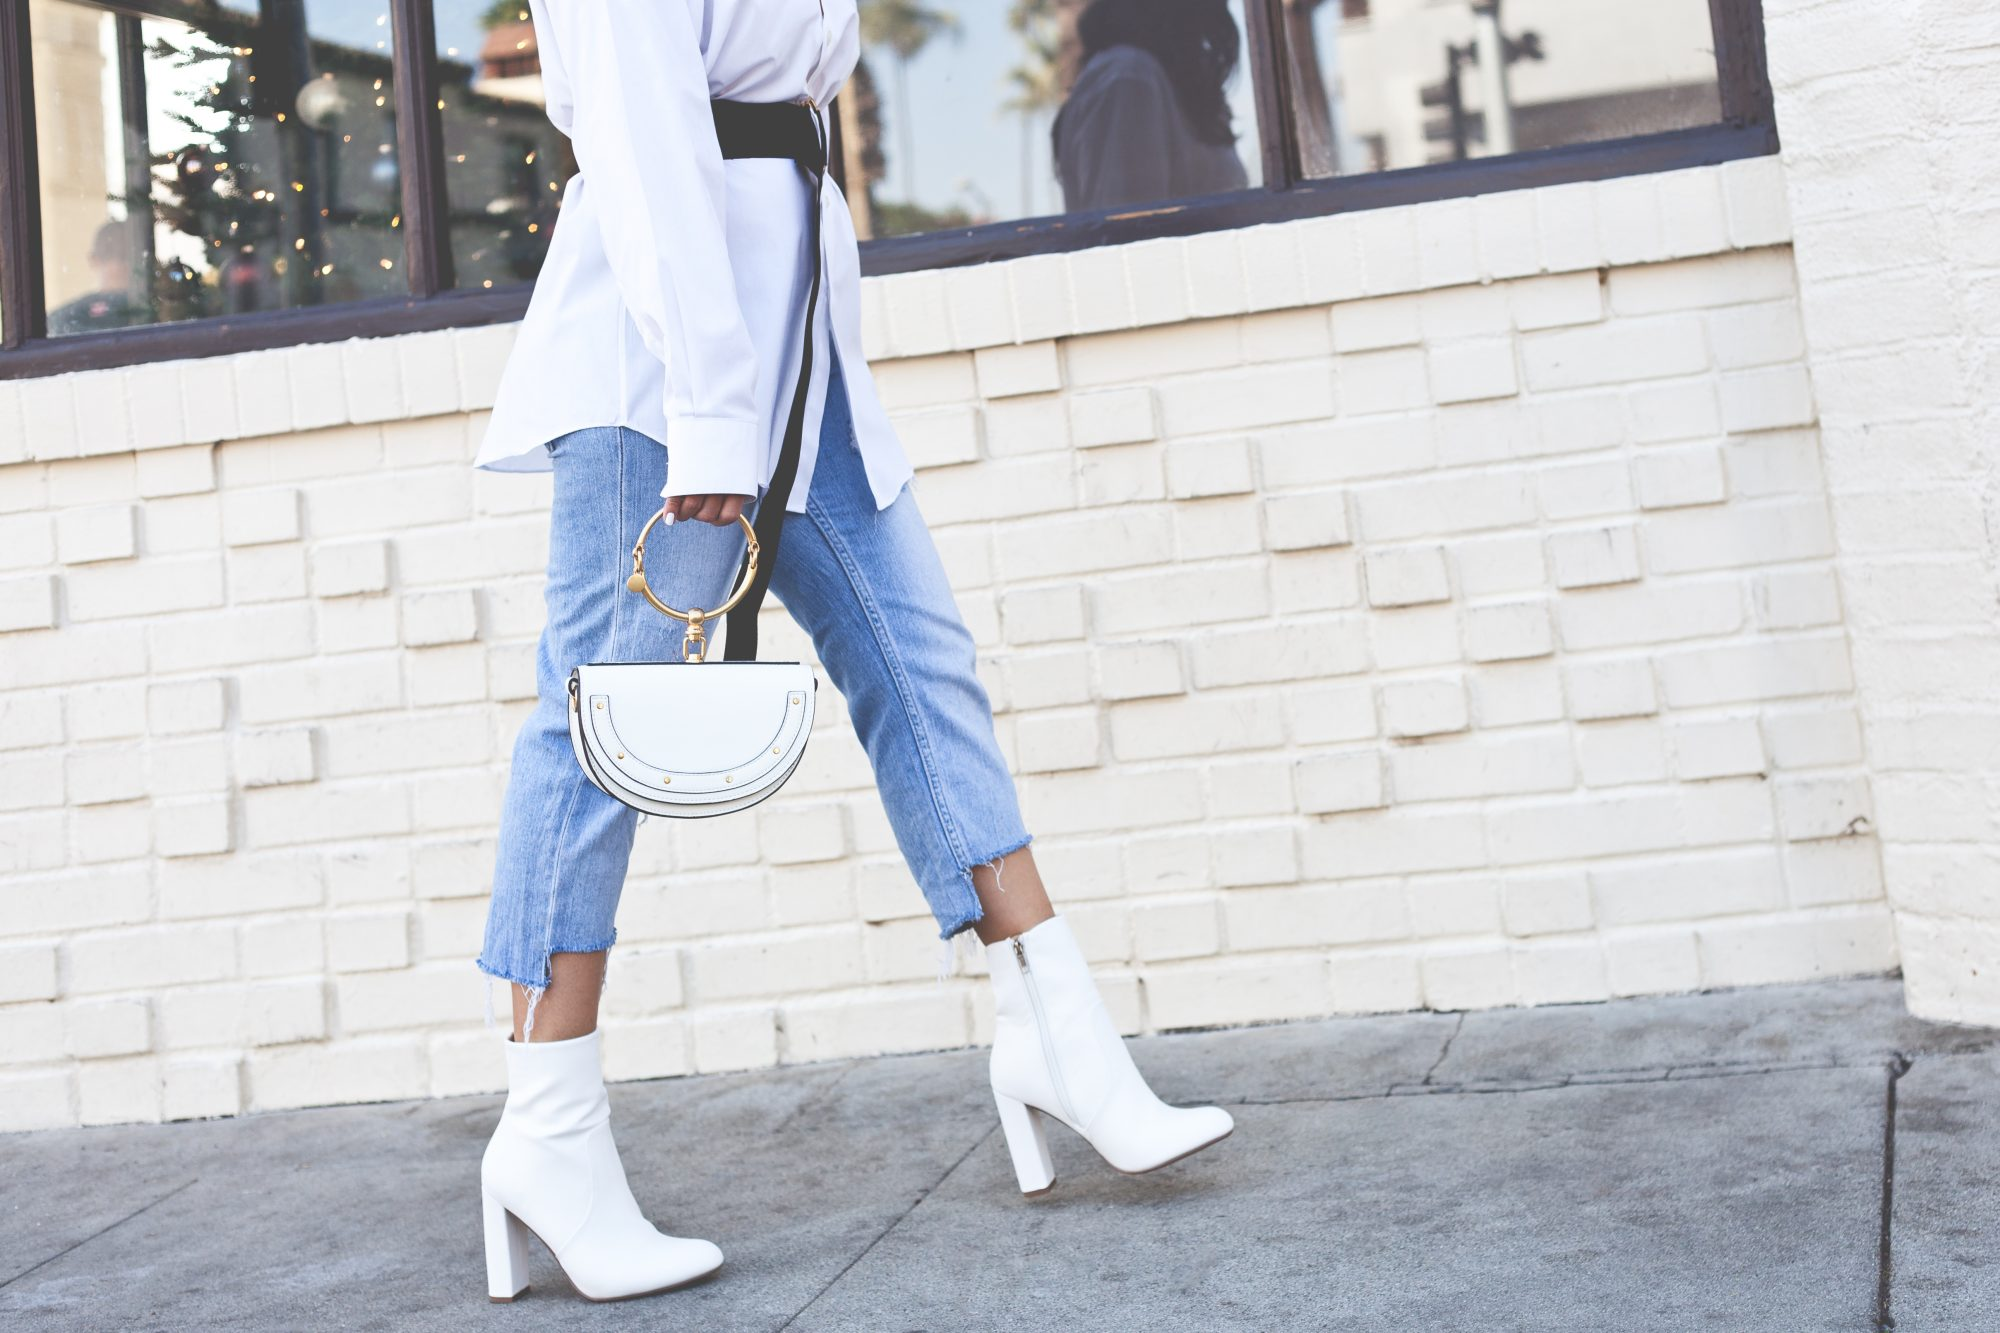 A great way to spice up your outfits with a 70's gogo vibe, you can pair white boots with light wash denim and an oversized sweater for a casual yet chic look. - www.theballeronabudget.com